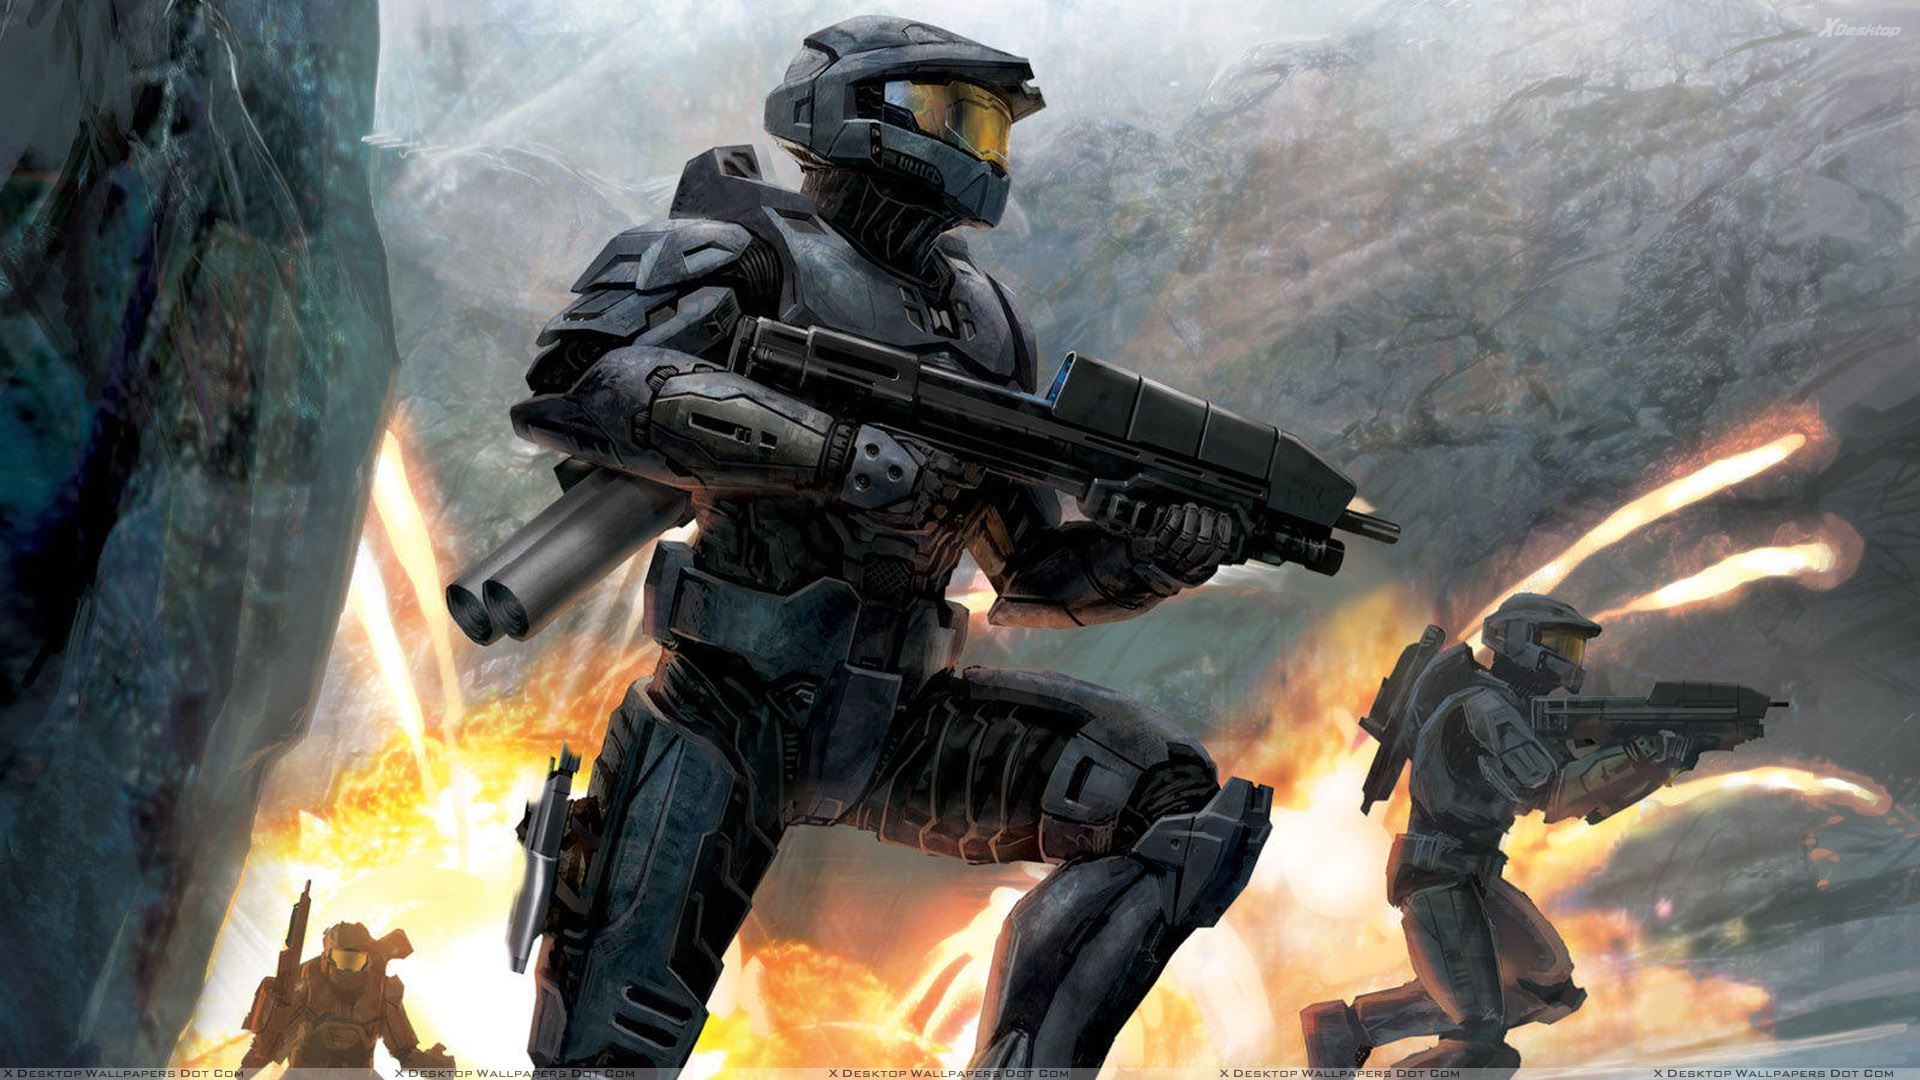 halo 3 wallpapers, photos & images in hd